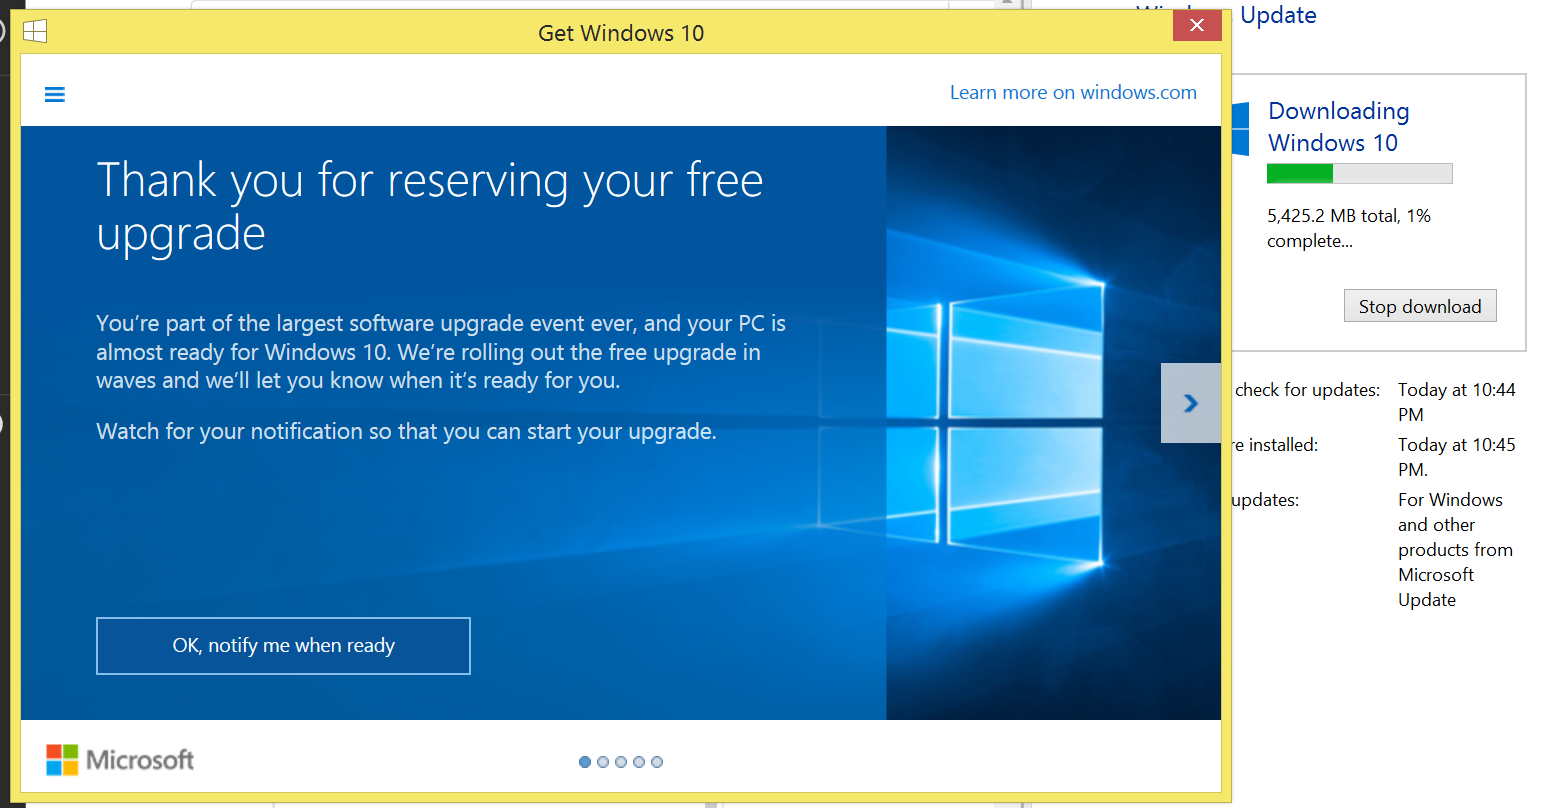 How to force Windows to start downloading the Windows 10 update